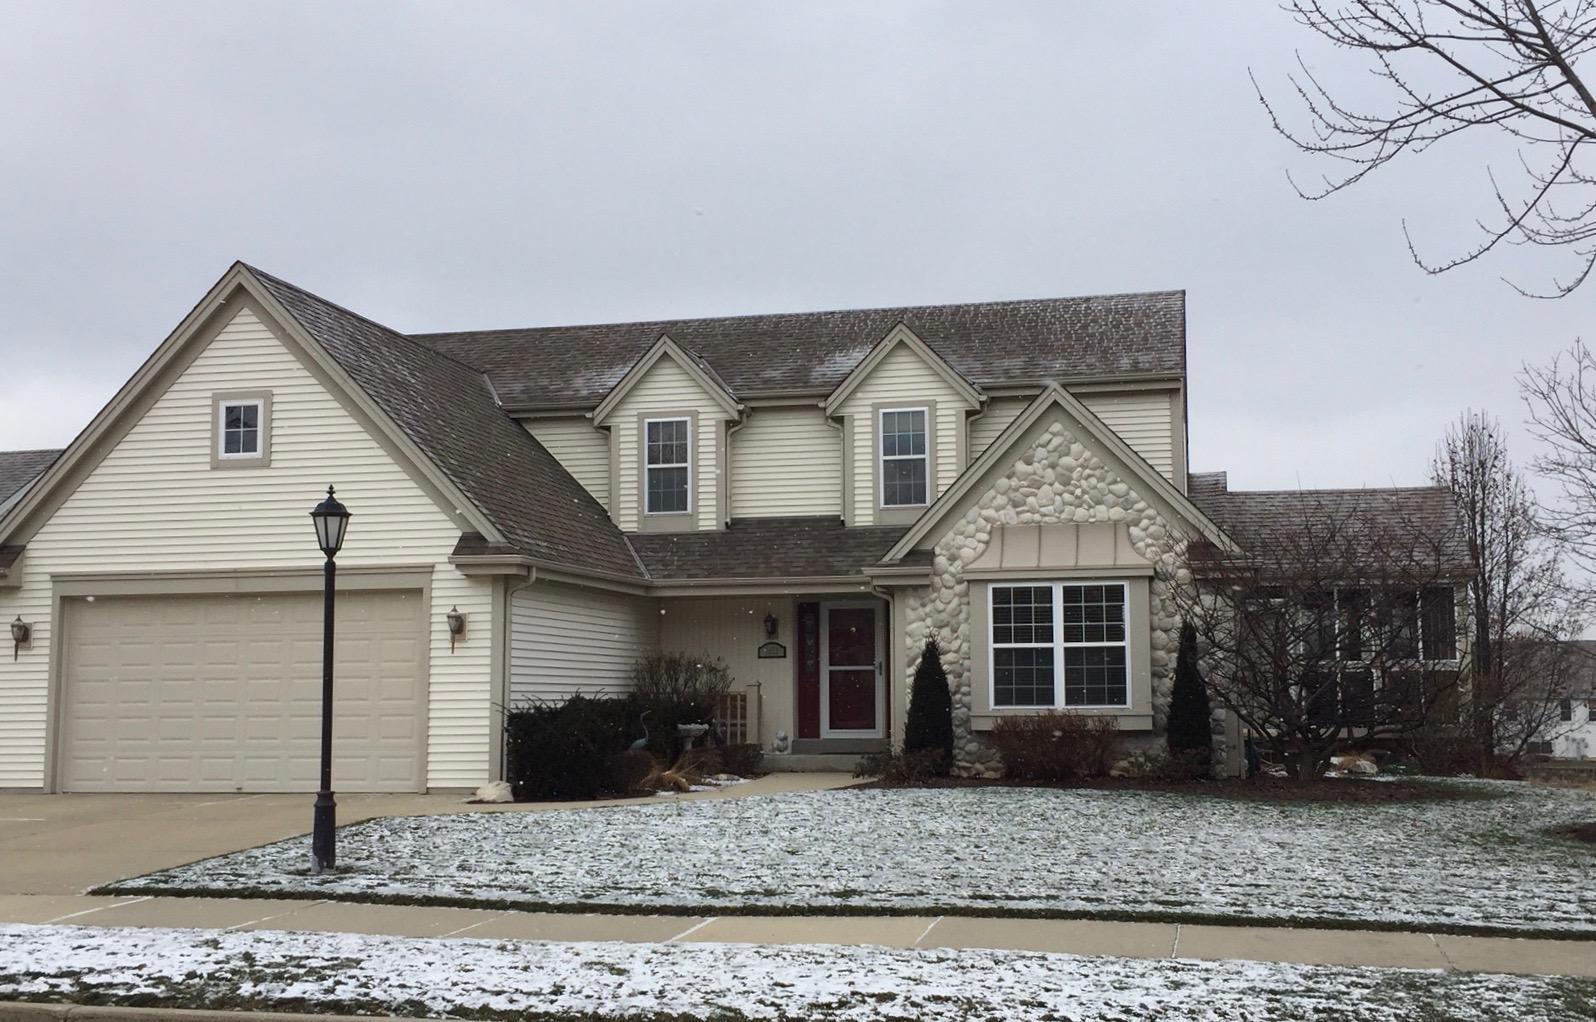 1632 Auburn Ct, Waukesha, Wisconsin 53189, 4 Bedrooms Bedrooms, ,3 BathroomsBathrooms,Single-Family,For Sale,Auburn Ct,1616502